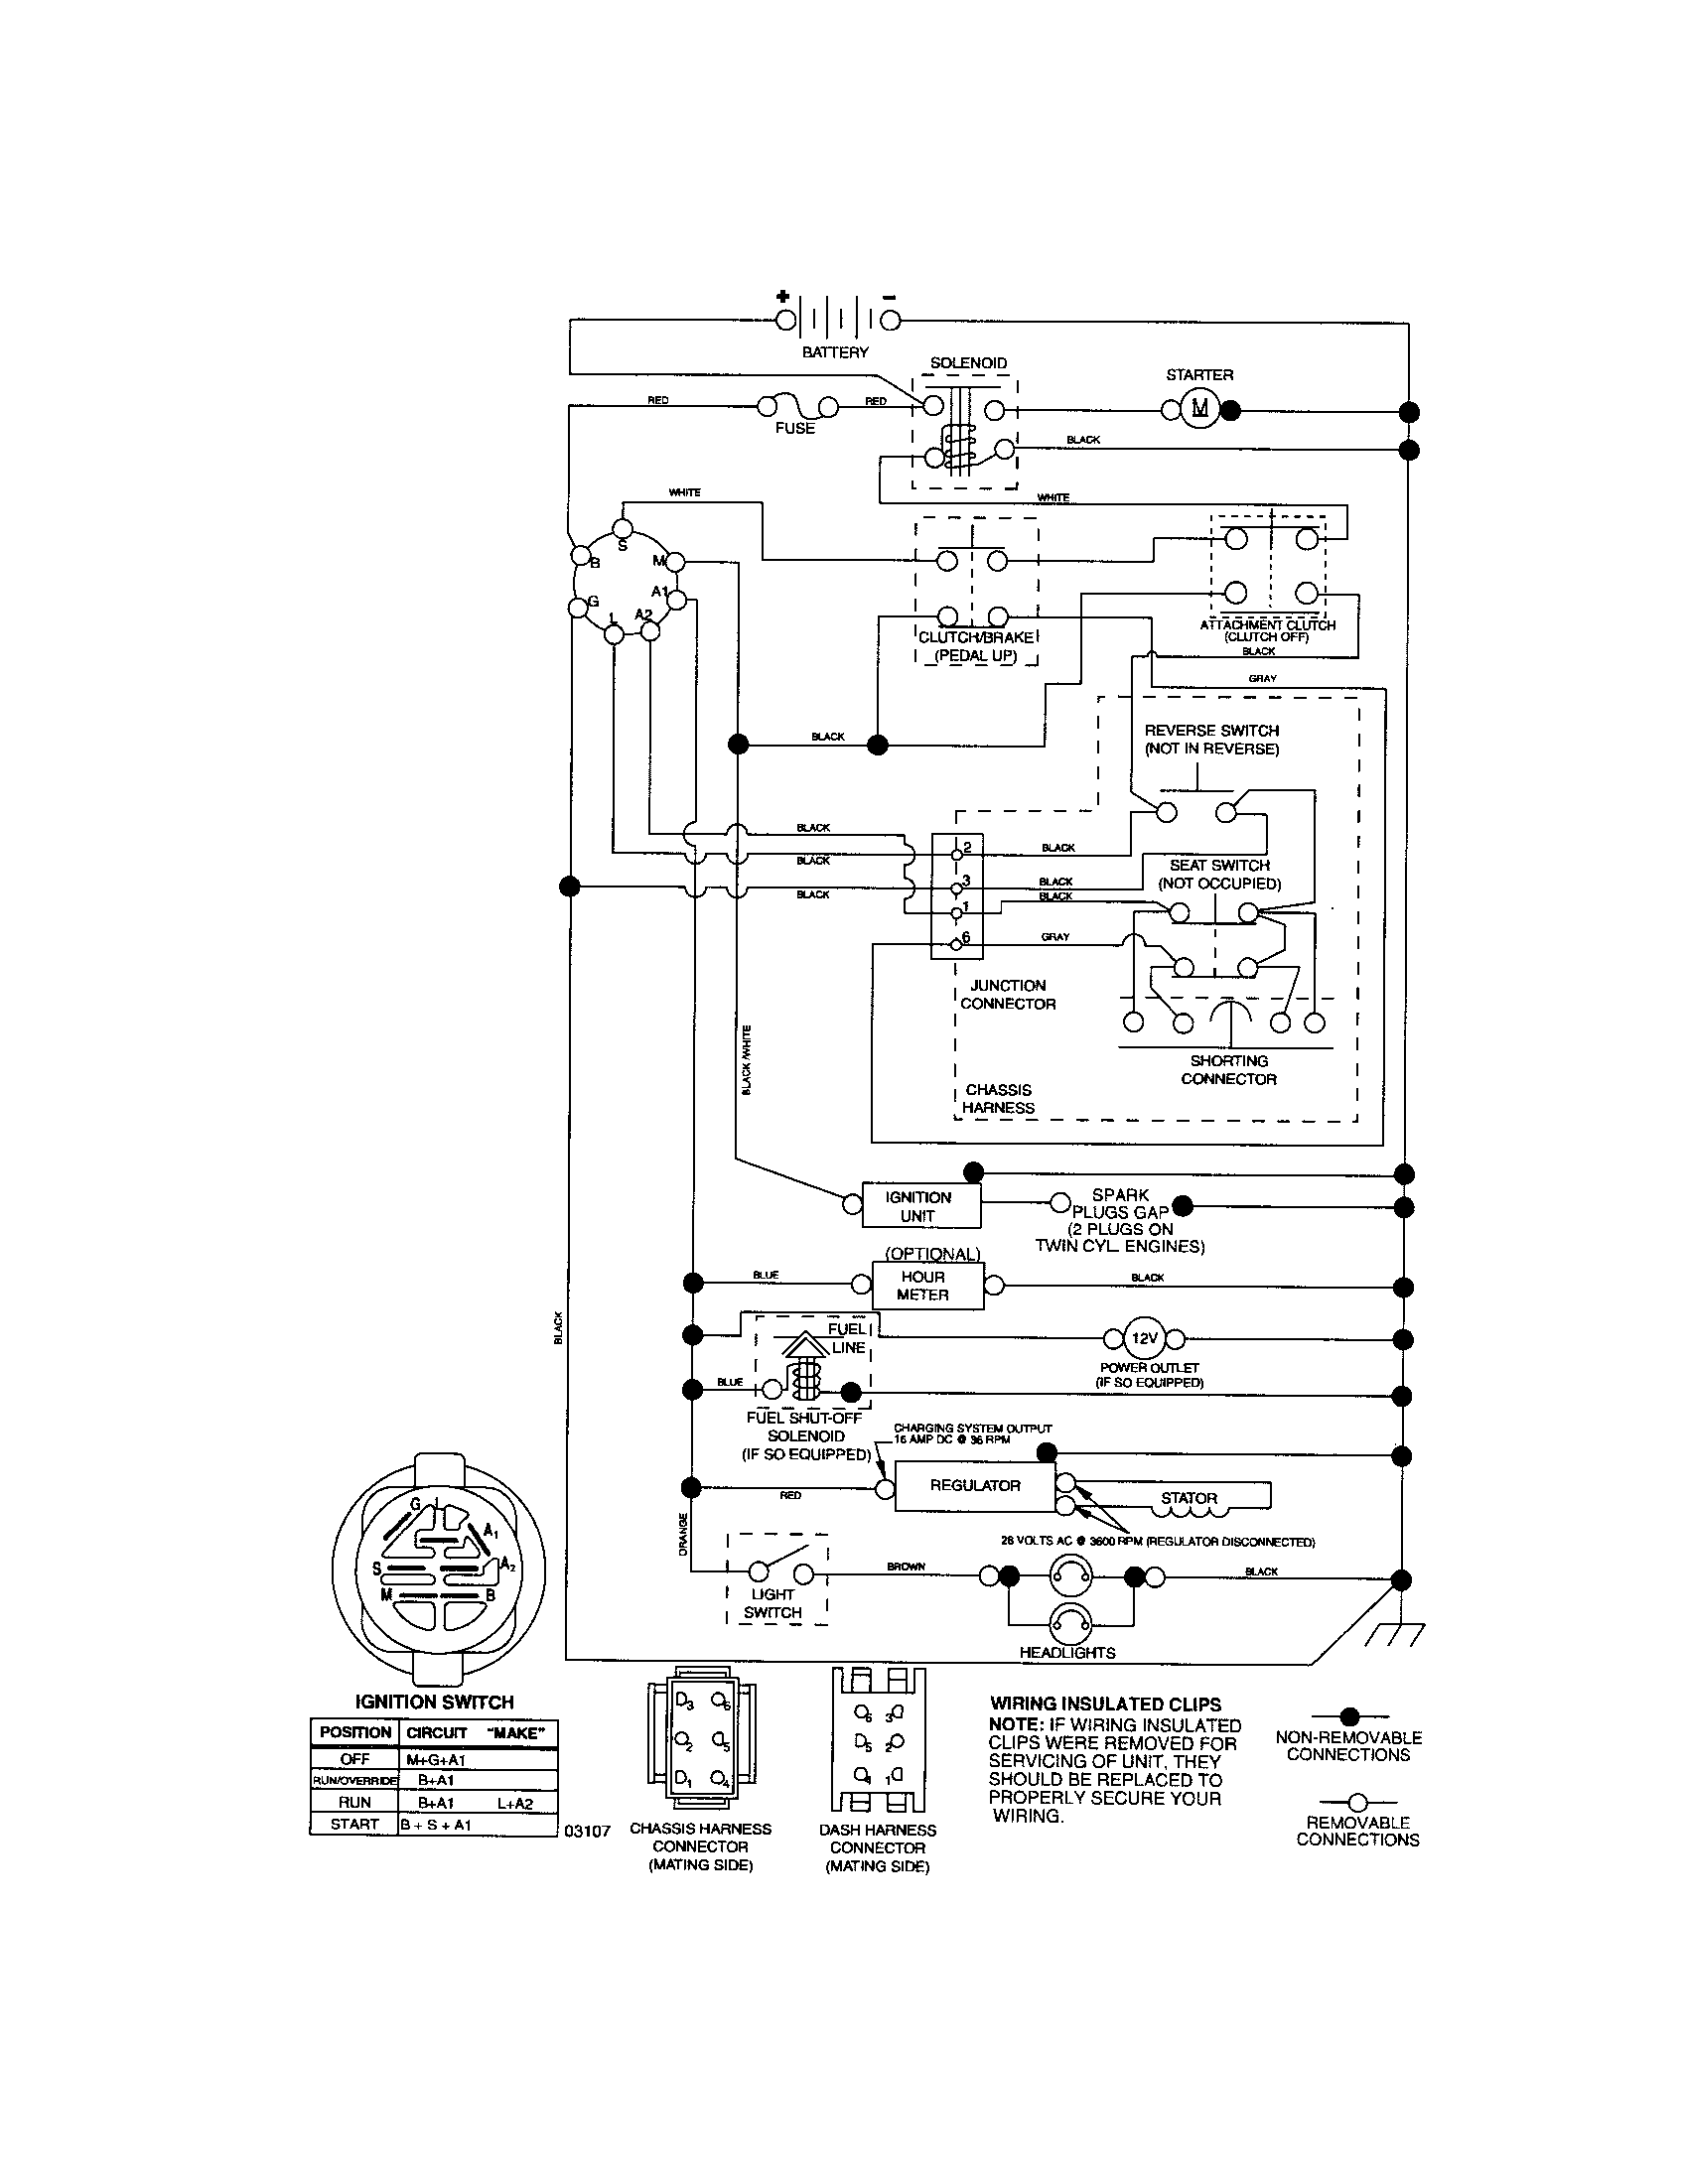 craftsman riding mower electrical diagram wiring diagram craftsman craftsman wiring diagrams [ 1696 x 2200 Pixel ]